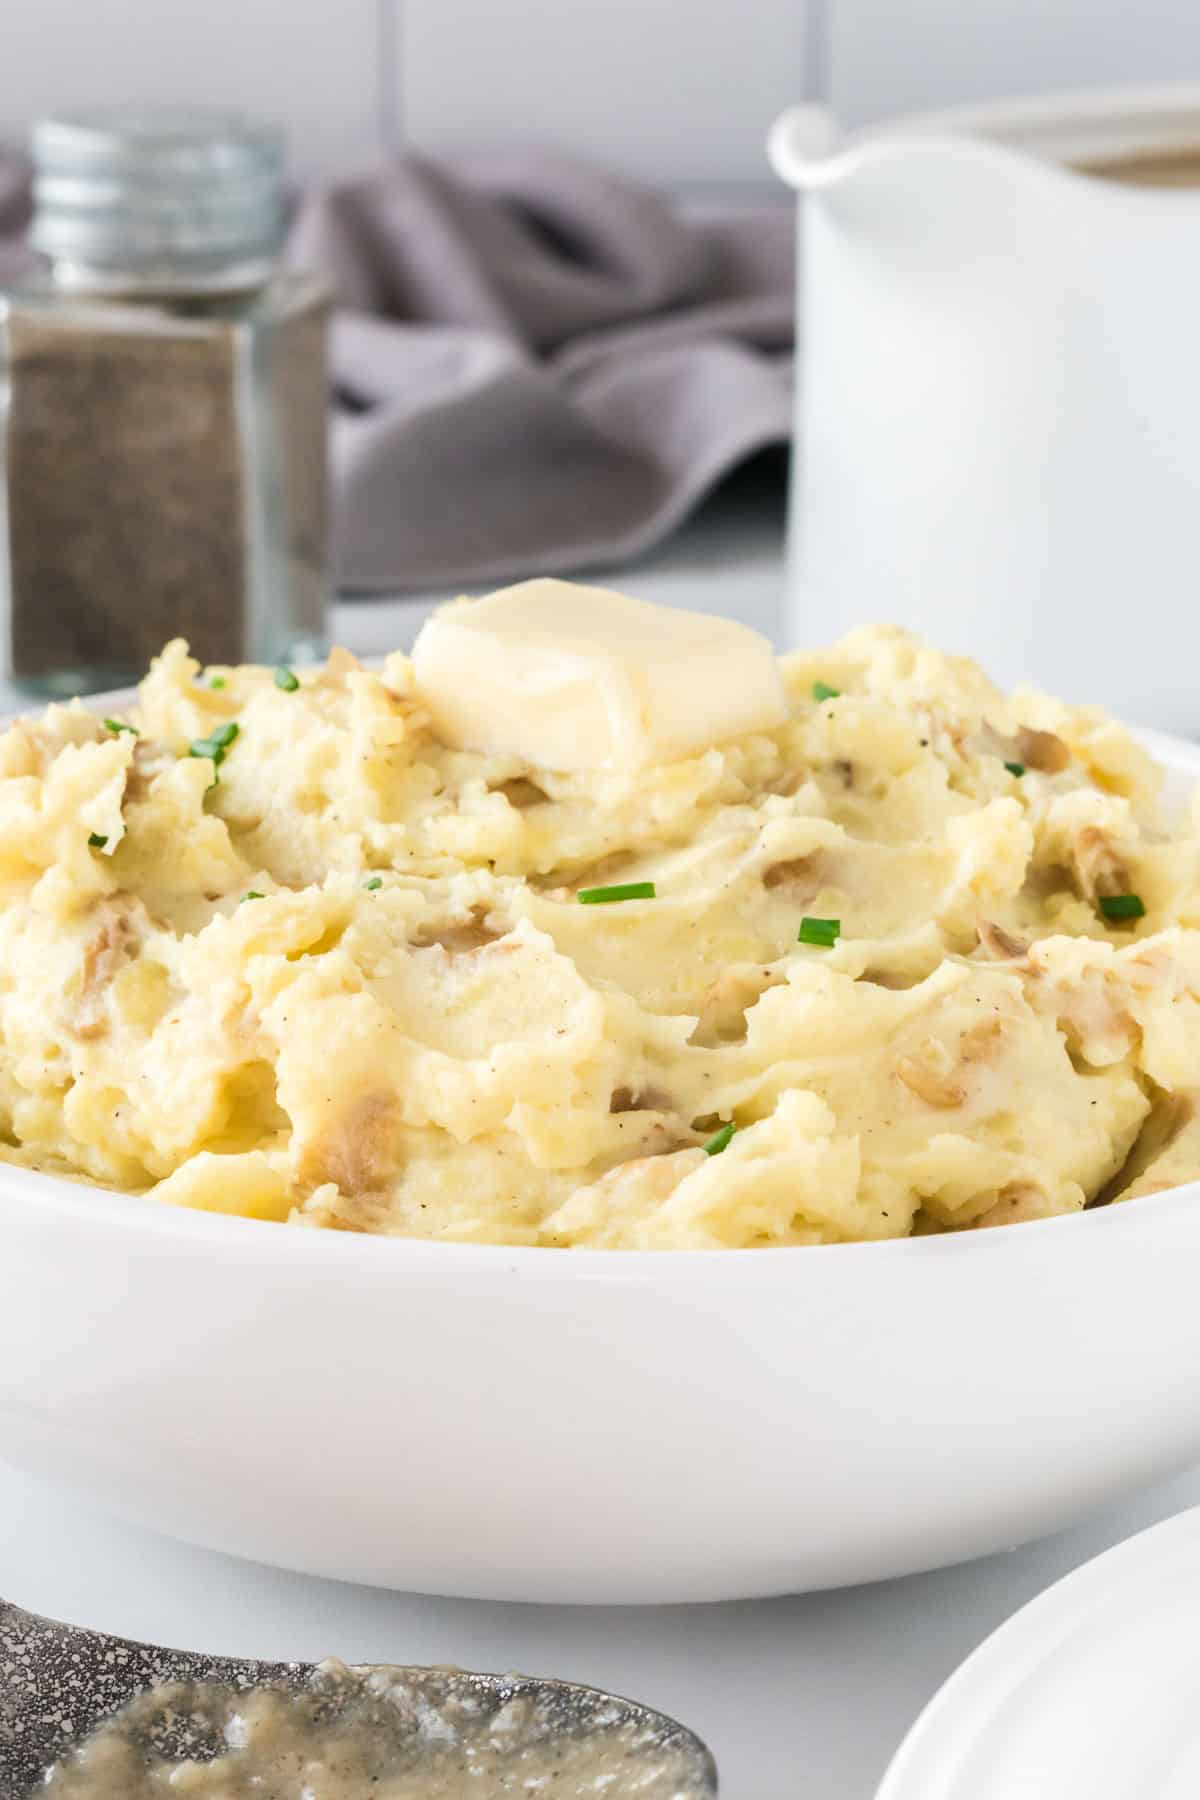 mashed potatoes in a bowl topped with butter and chives